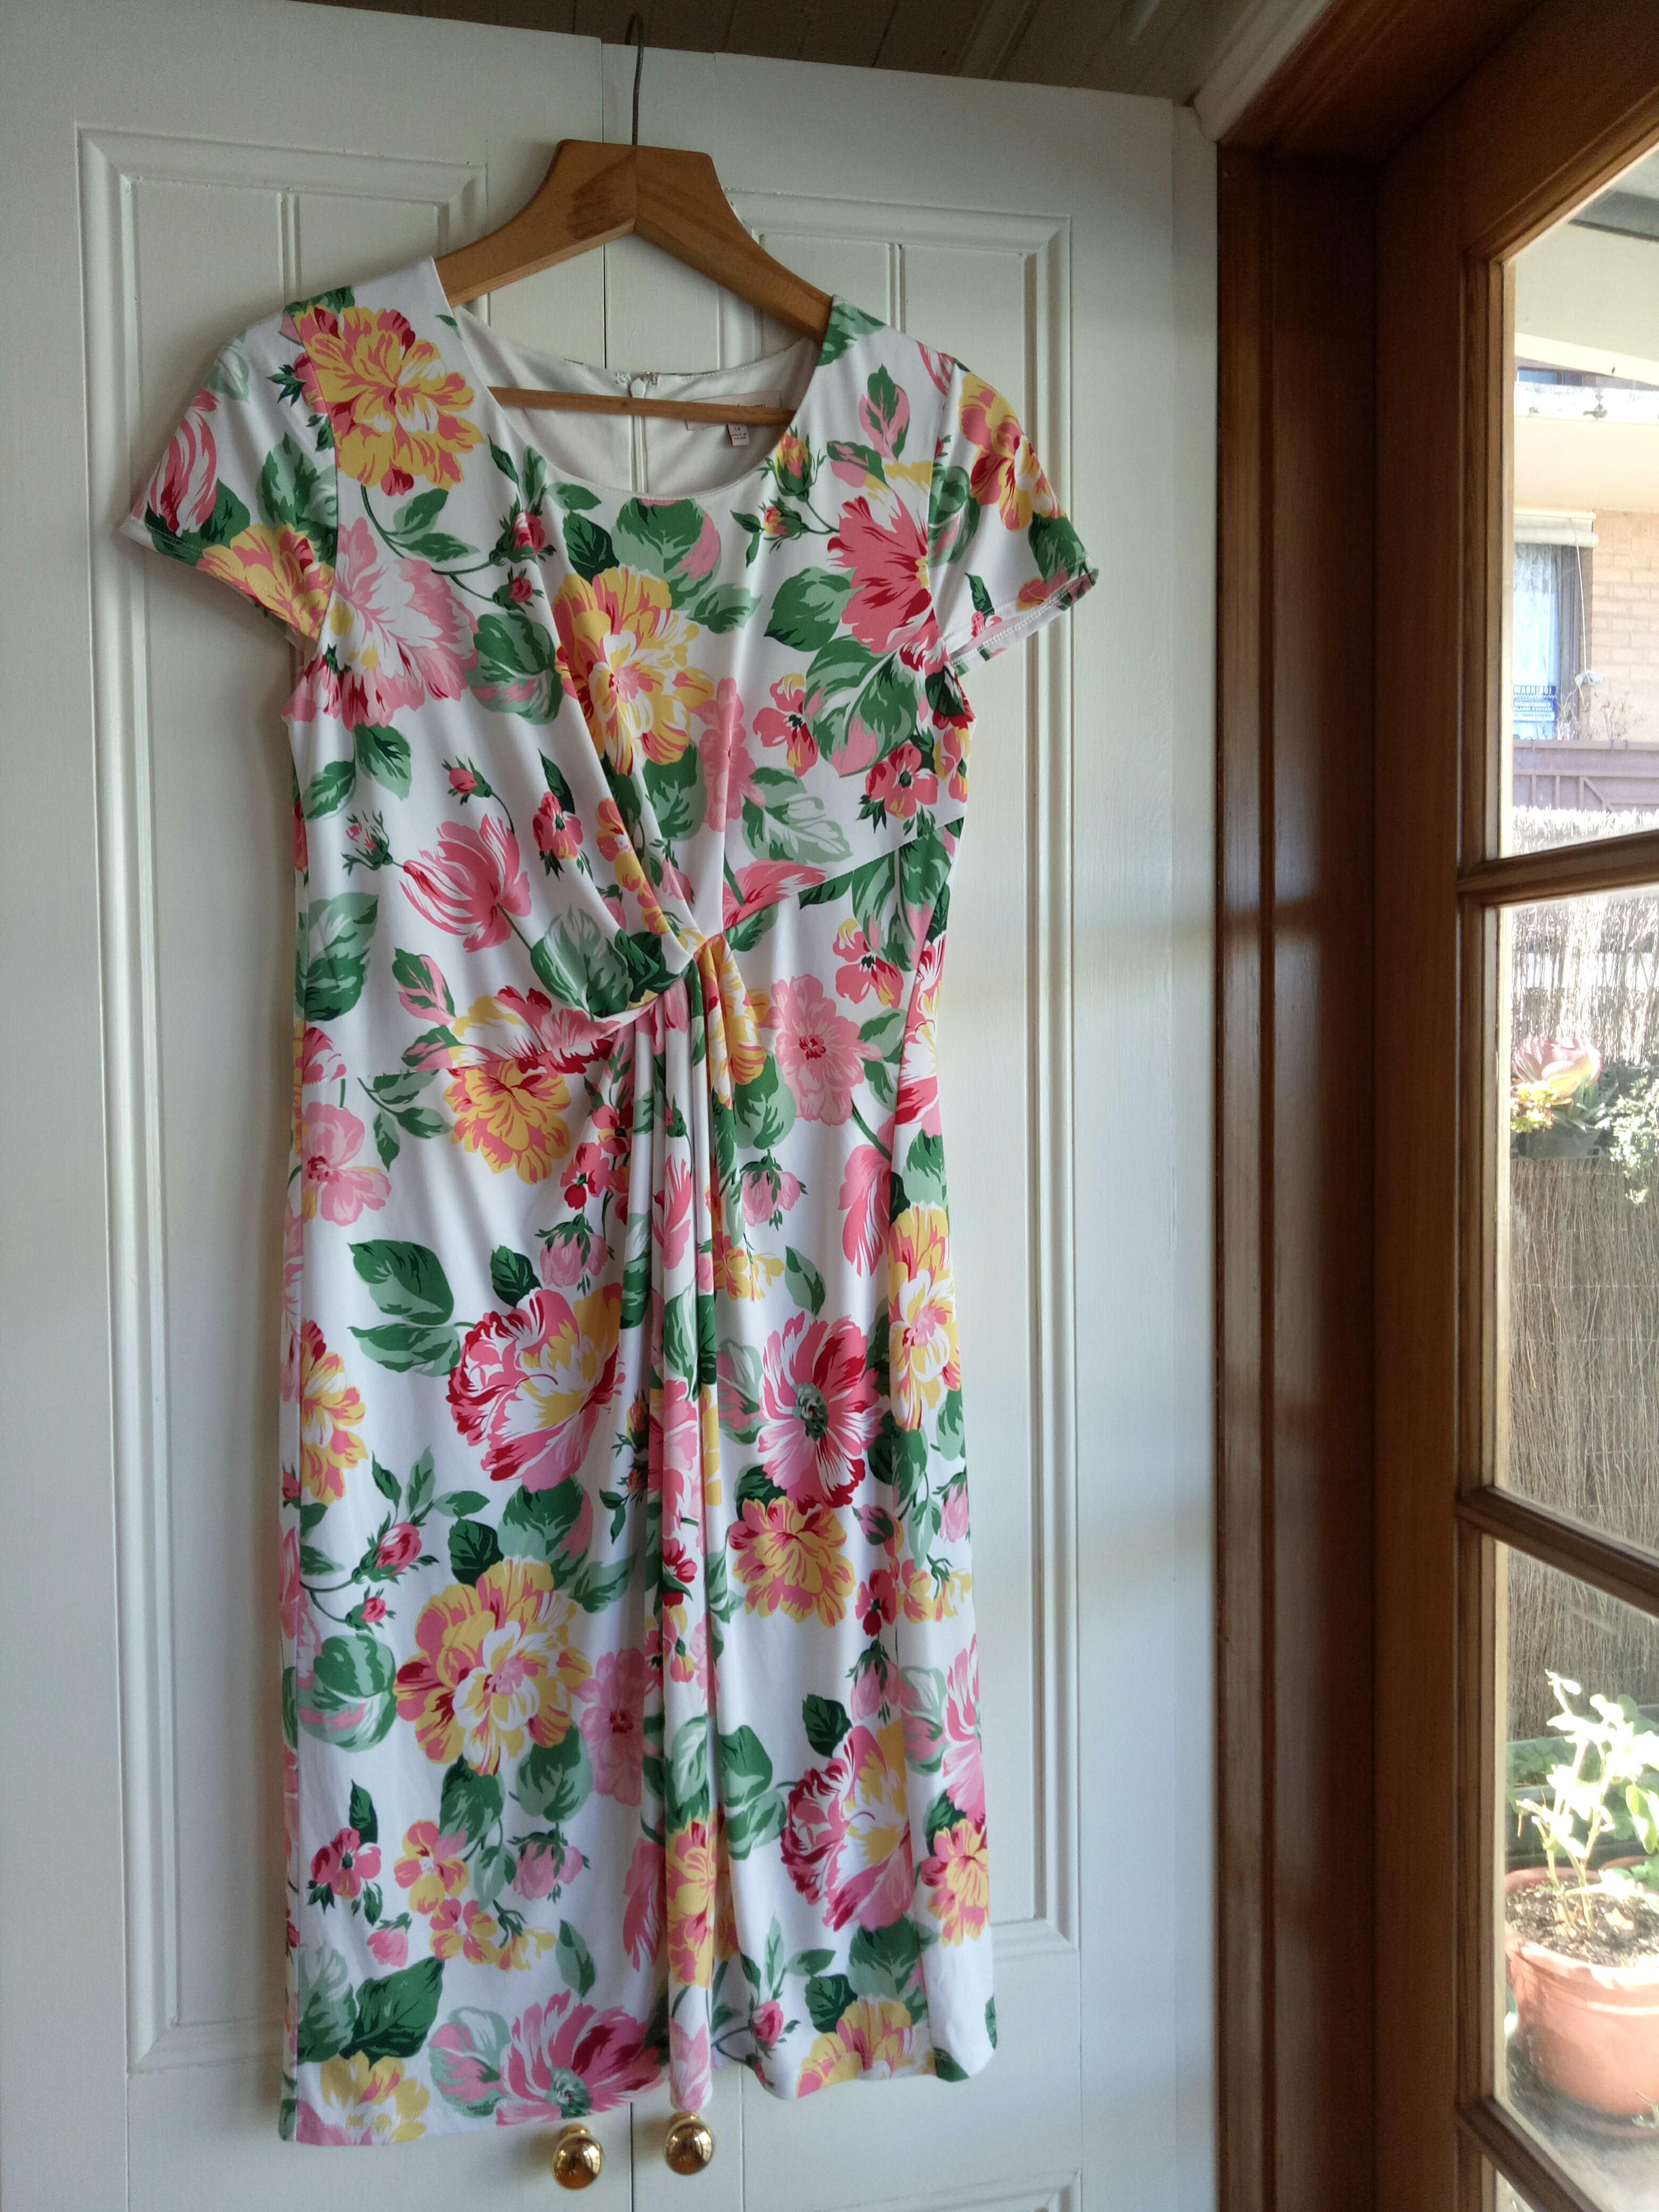 Brand New Diana Ferrari floral dress